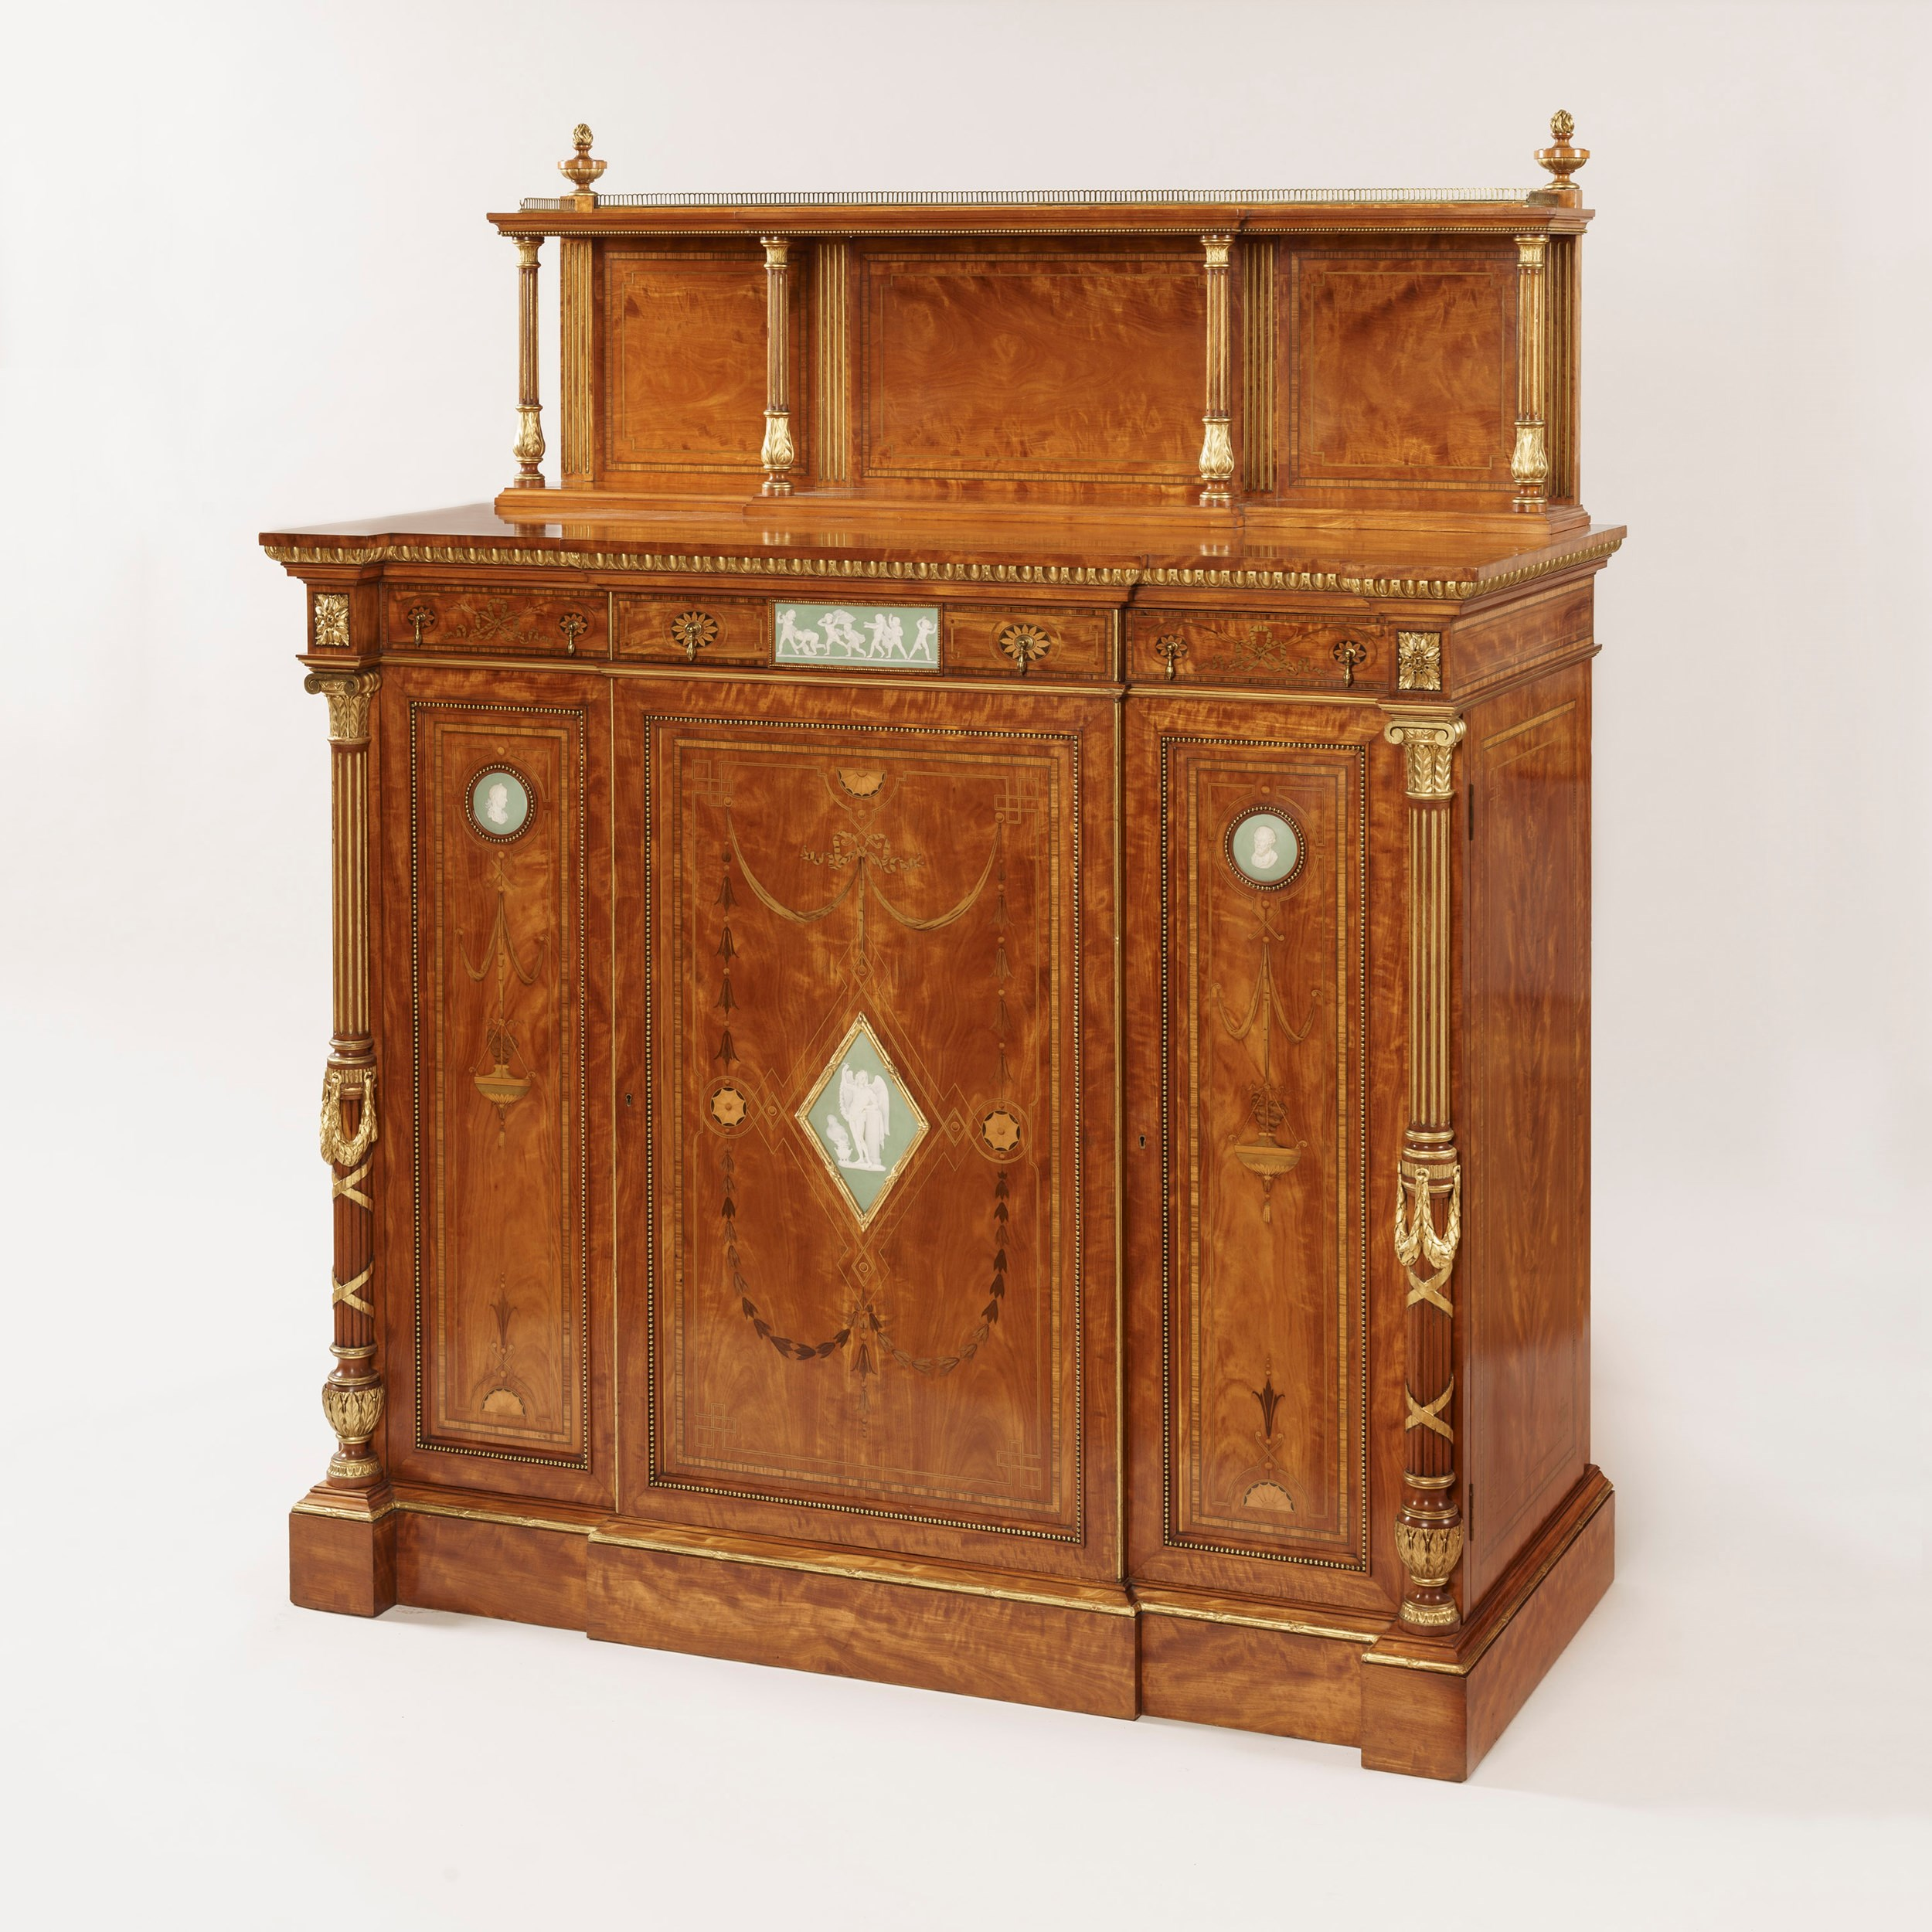 Butchoff 9046 Wright & Mansfield cabinet with wedgwood plaques